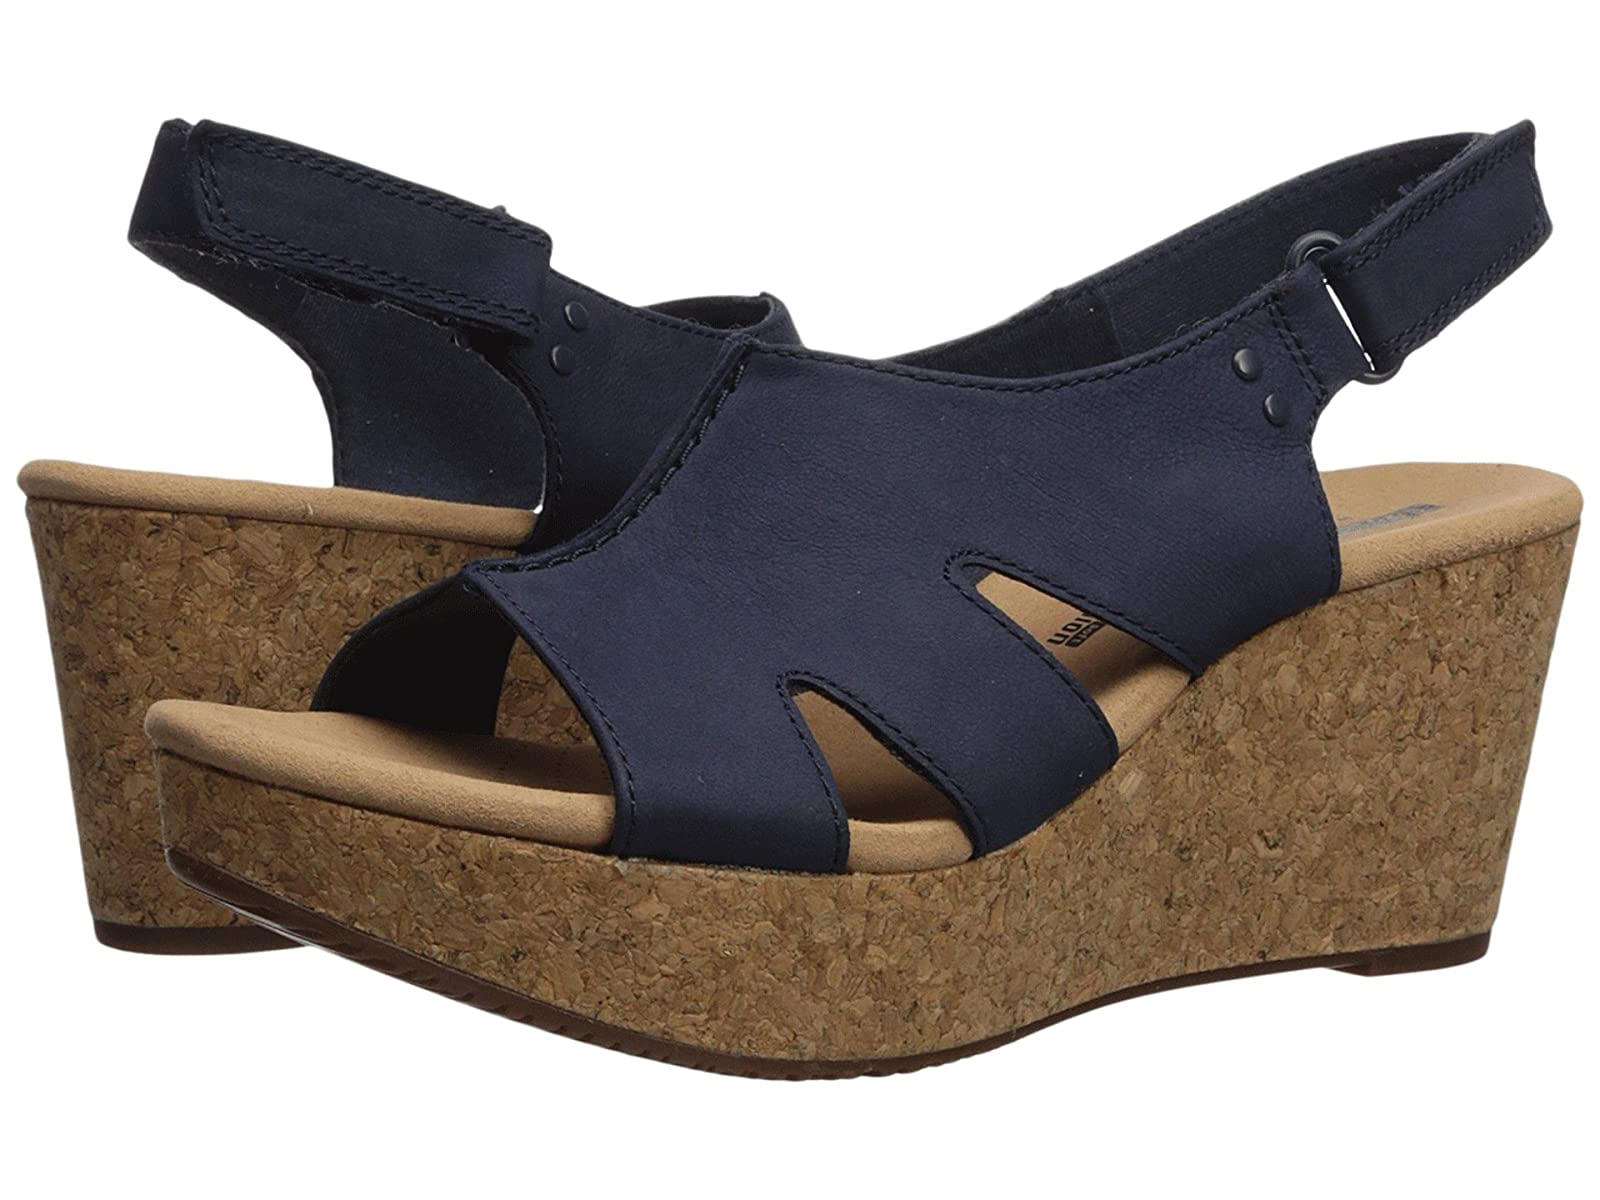 Clarks Annadel BariCheap and distinctive eye-catching shoes